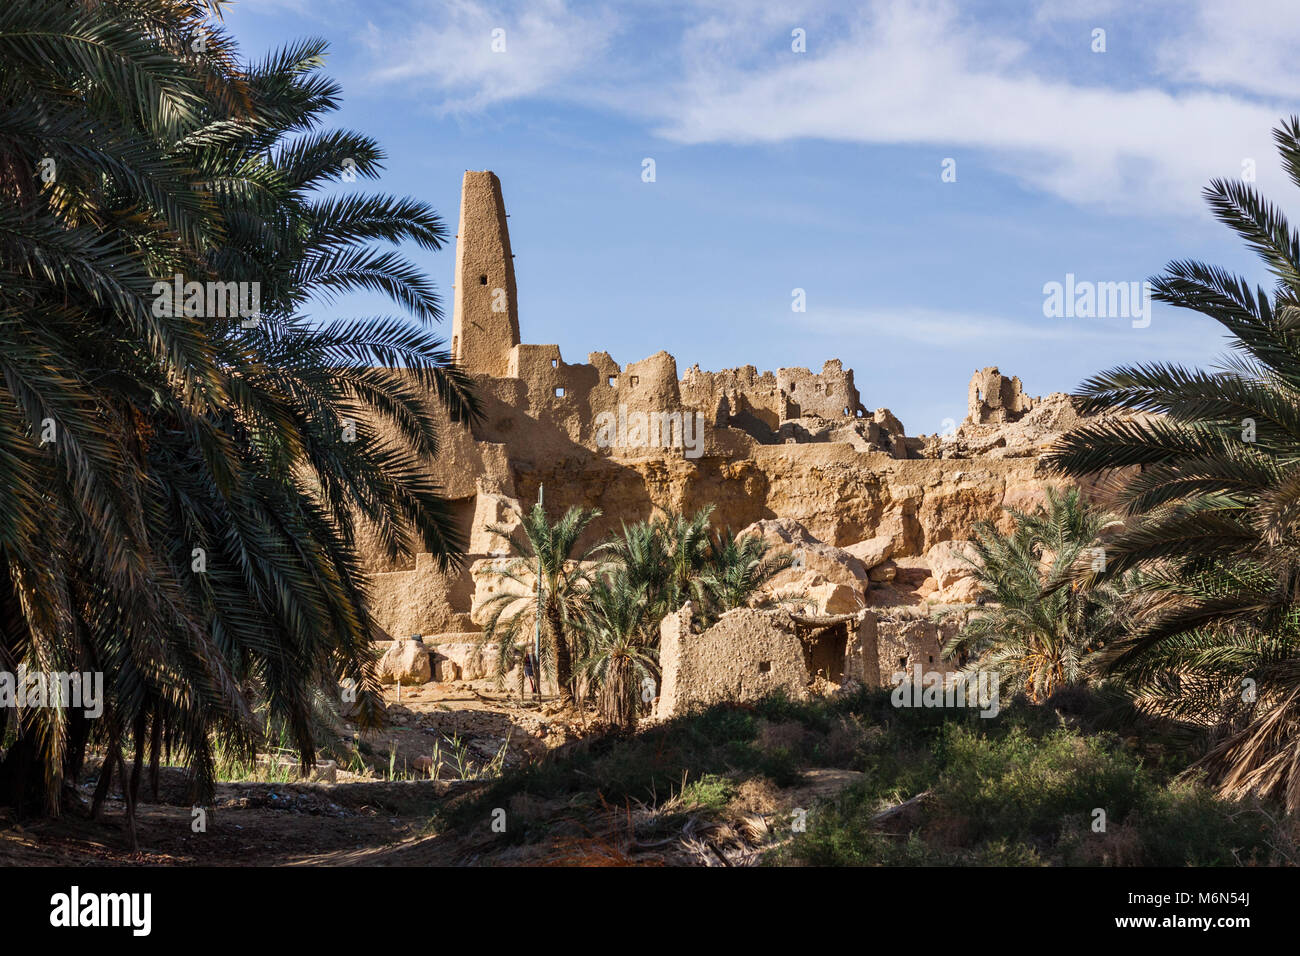 Restes du Temple de l'Oracle d'Ammun et mosquée à Aghurmi village. L'oasis de Siwa, Egypte Photo Stock